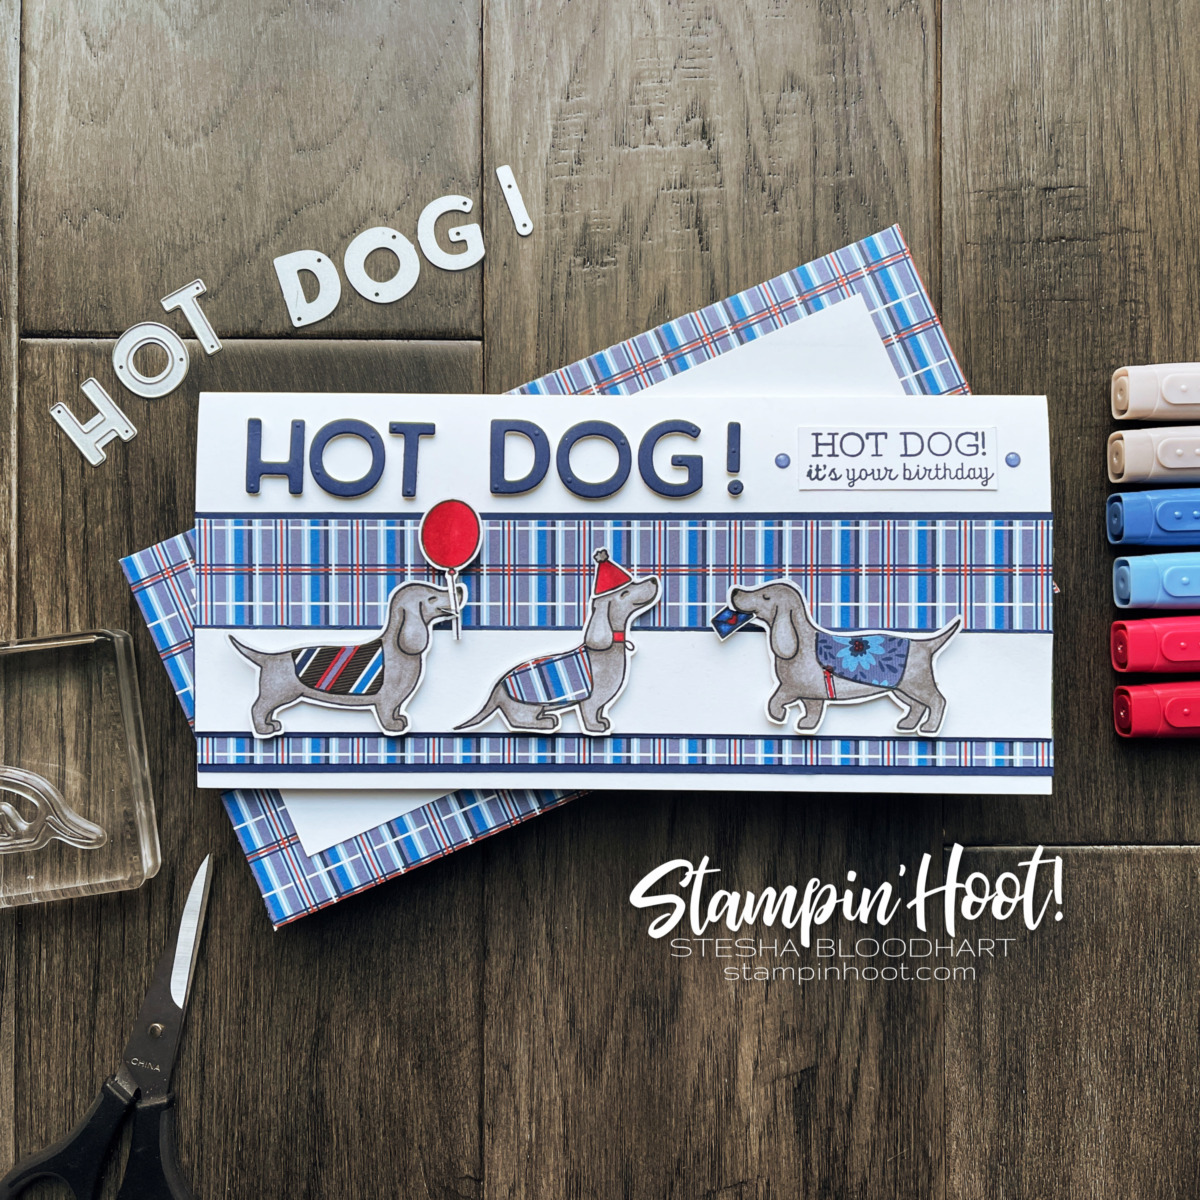 Hot Dog Stamp Set from Stampin' Up! Card by Stesha Bloodhart, Stampin' Hoot! Childrens Birthday Be Inspired